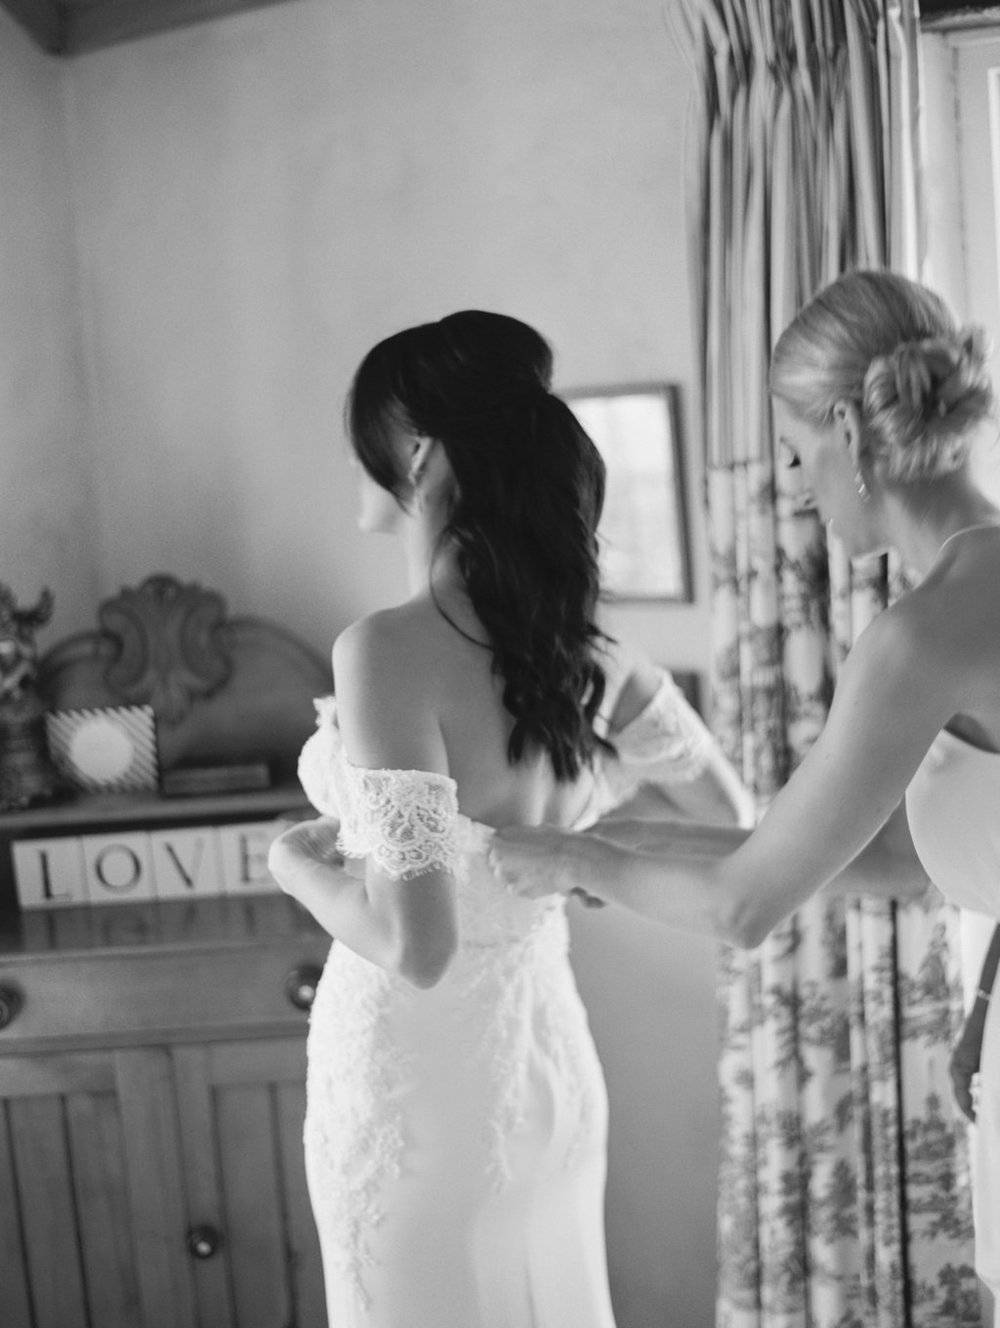 On the blog today... Real Bride Lauren in custom Prea James Bridal wedding gown. Captured by Bentinmarcs photography